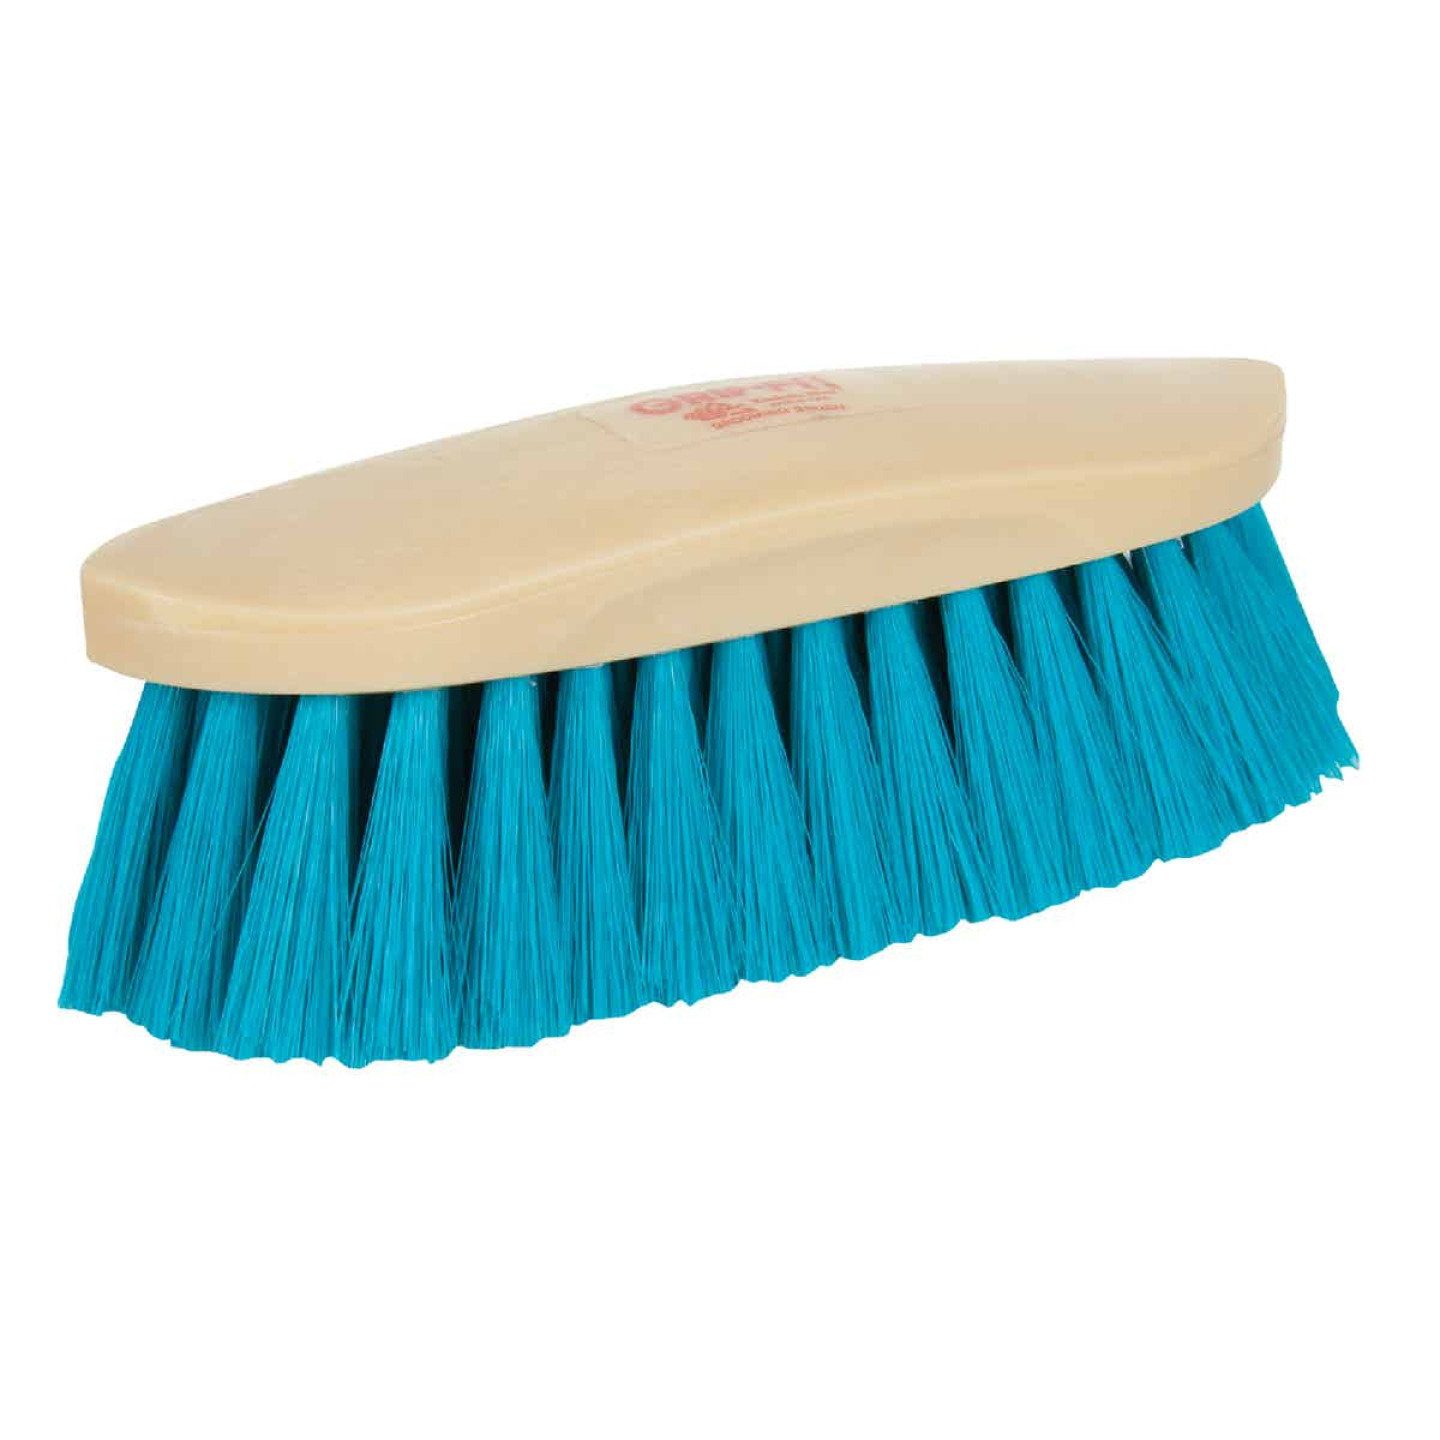 Decker Synthetic Bristles 2 In. Trim Size Grip-Fit Soft Grooming Brush Image 1